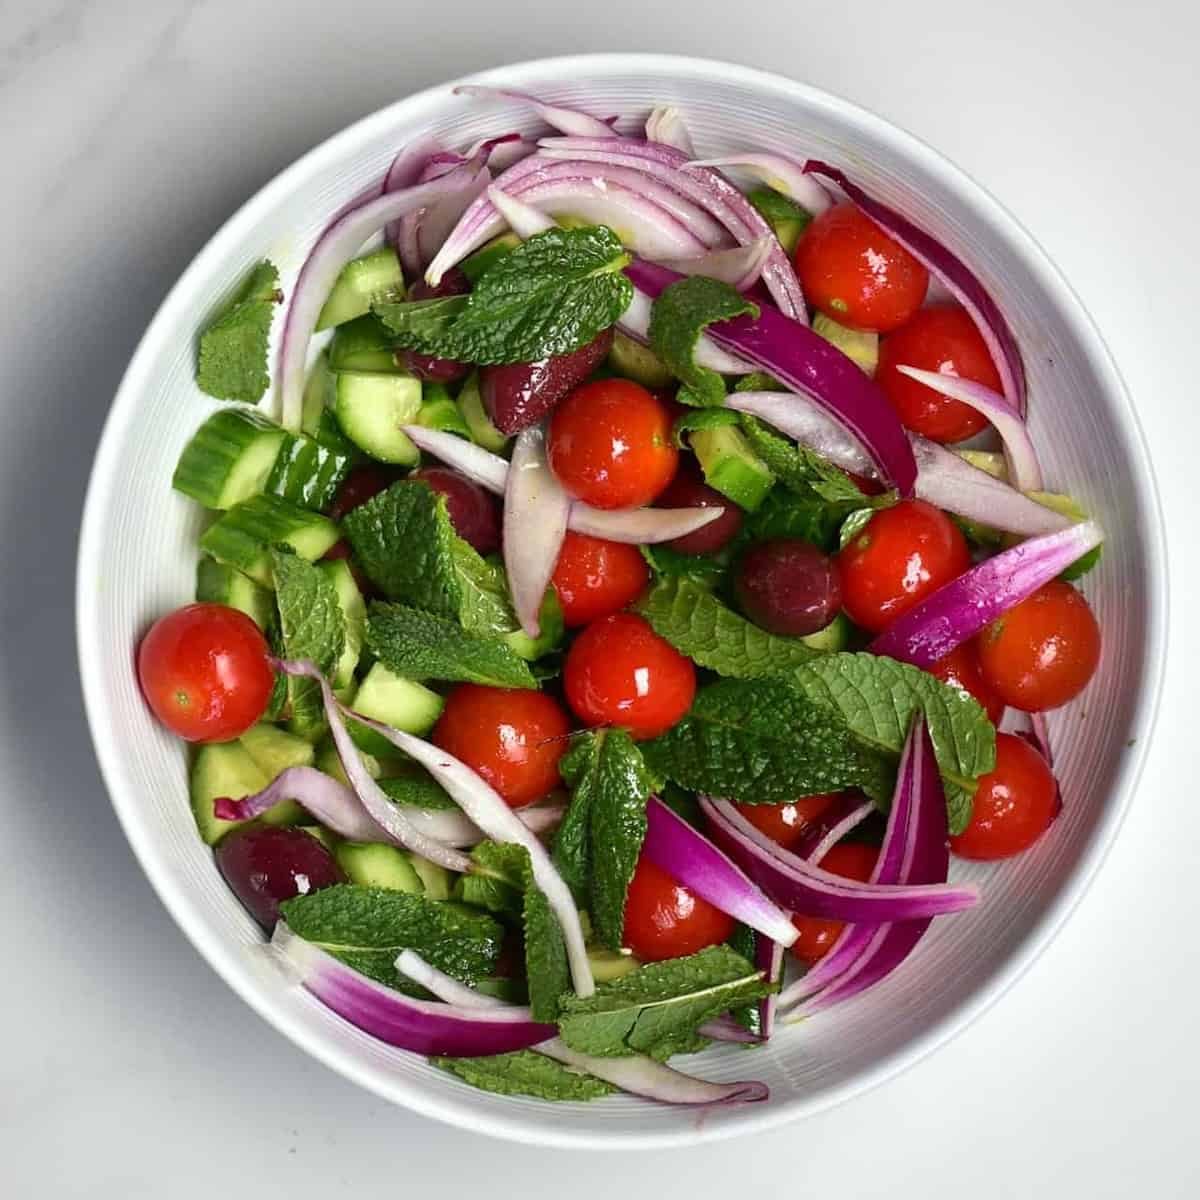 tomato, olives, red onion, cucumber and mint in a bowl